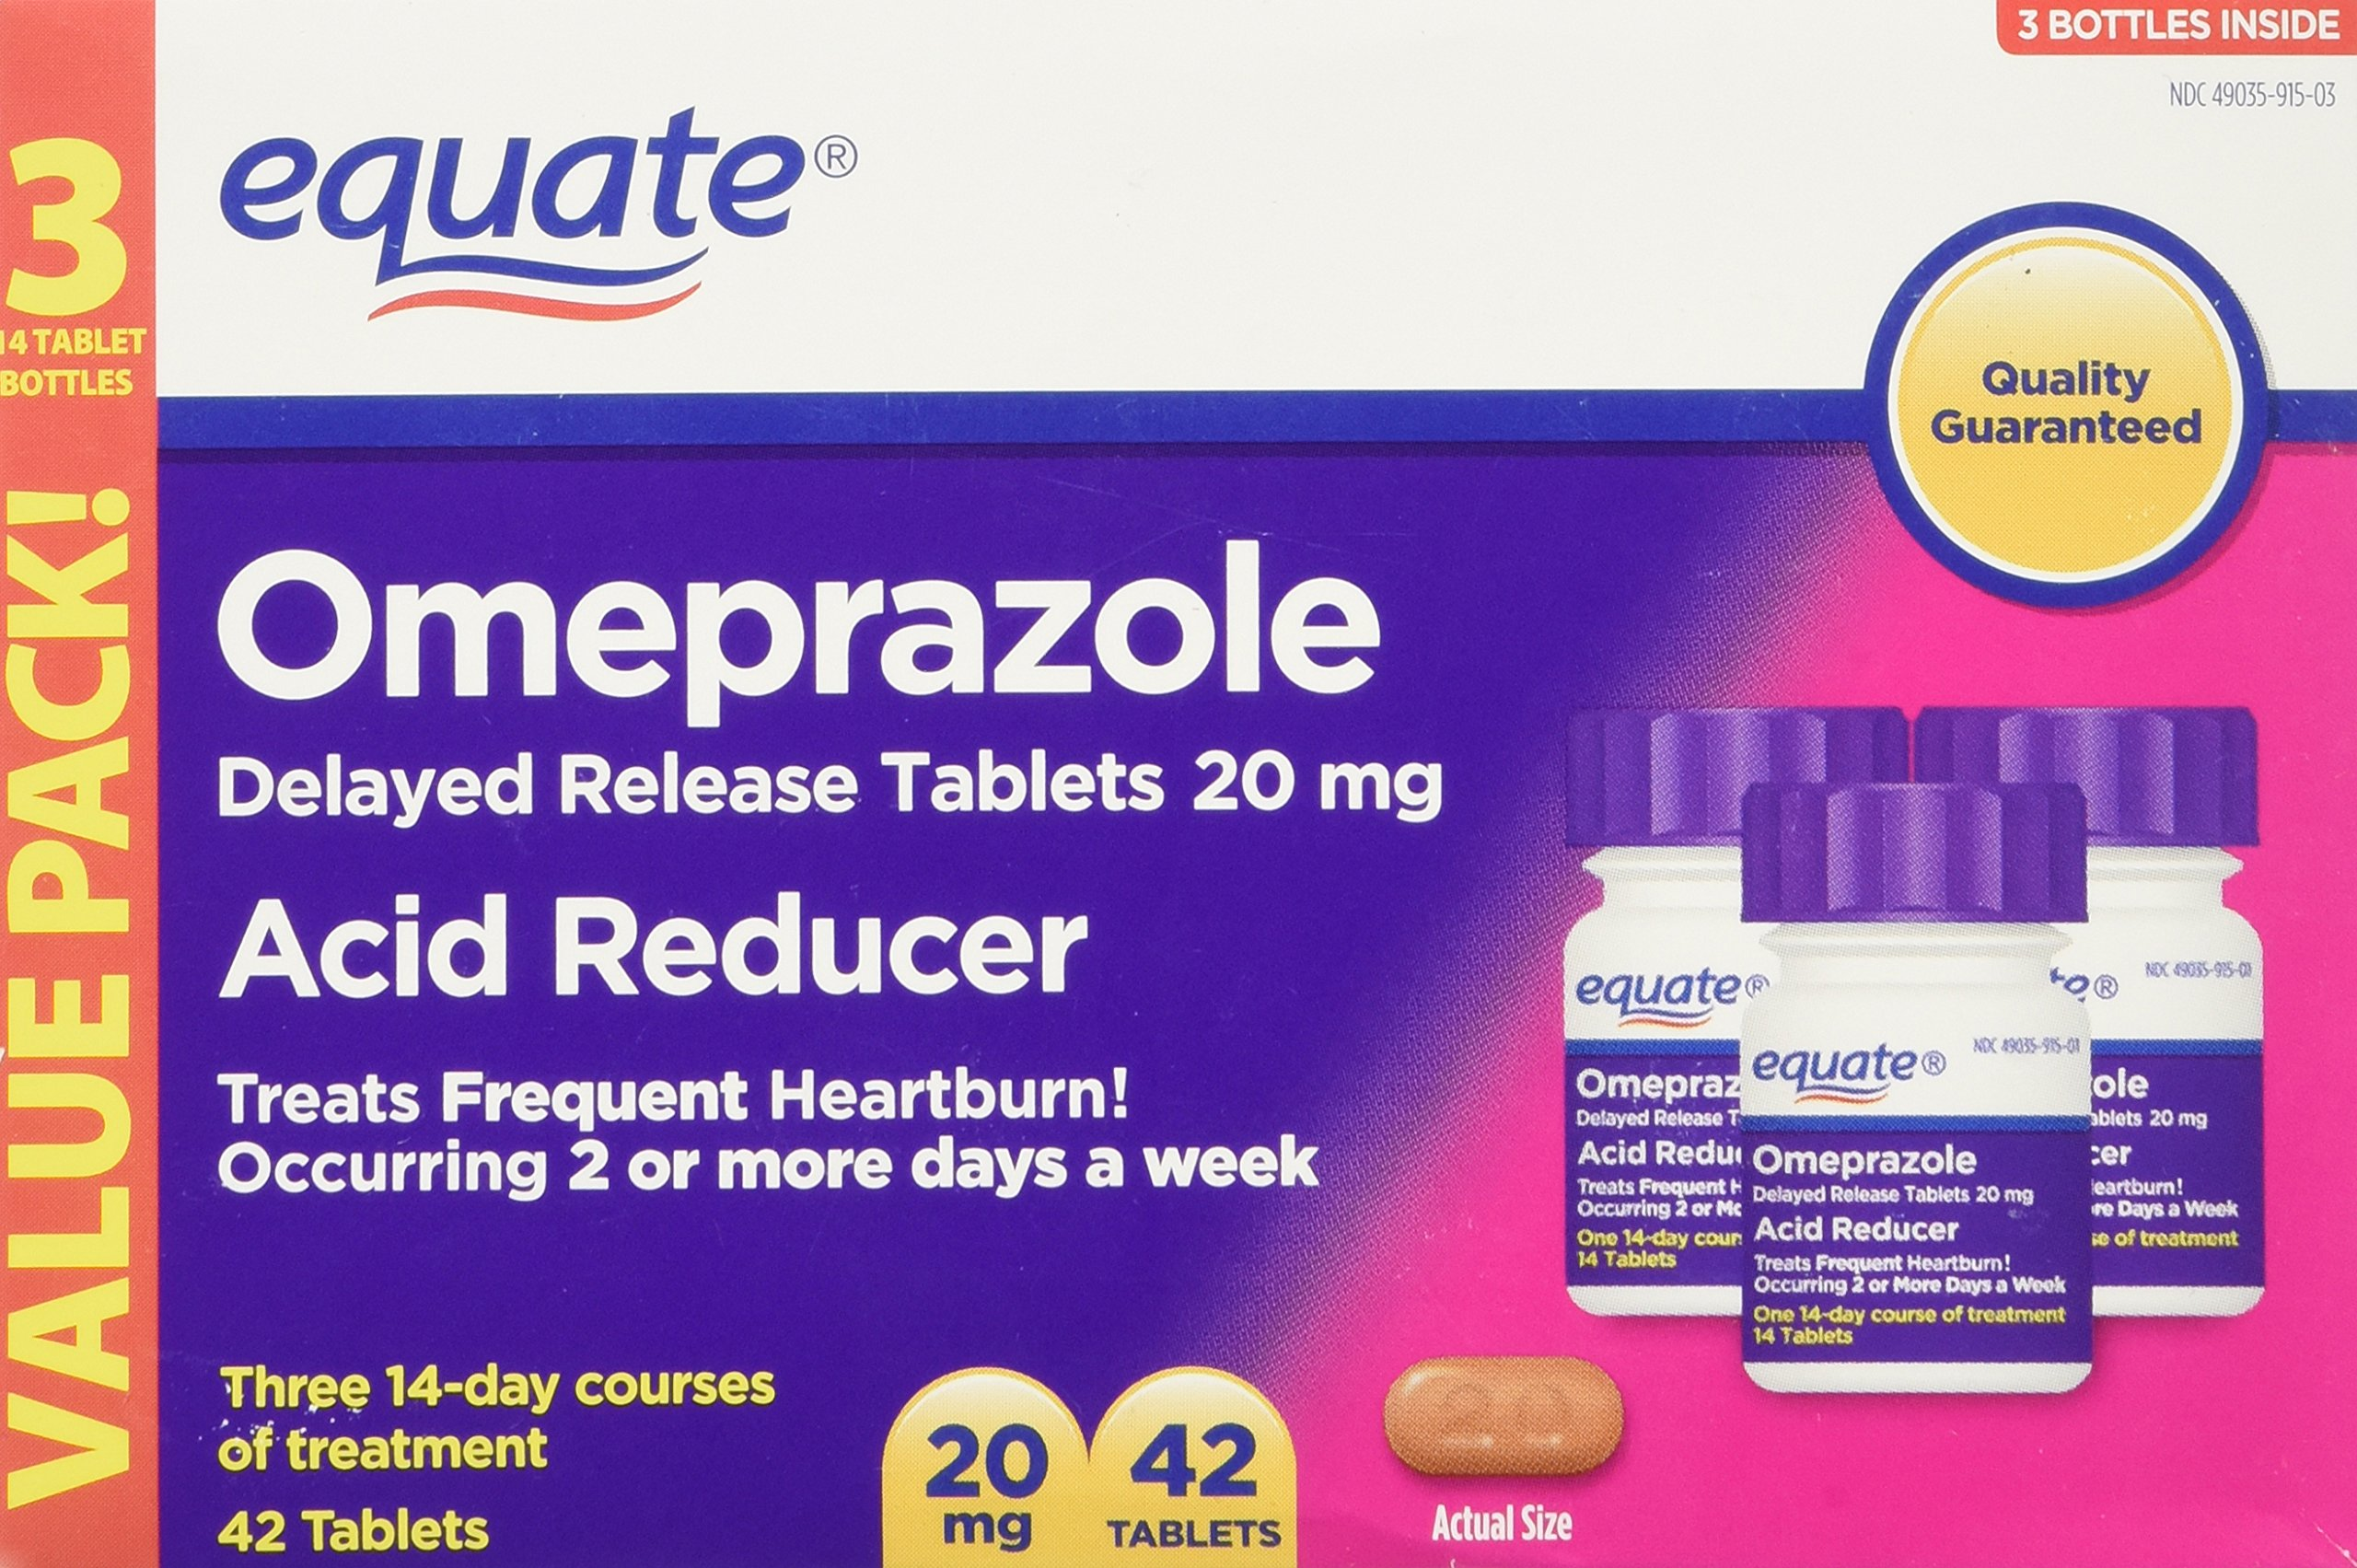 Equate Omeprazole 20 Milligram, Acid Reducer, Delayed Release, 42 Capsules by Equate